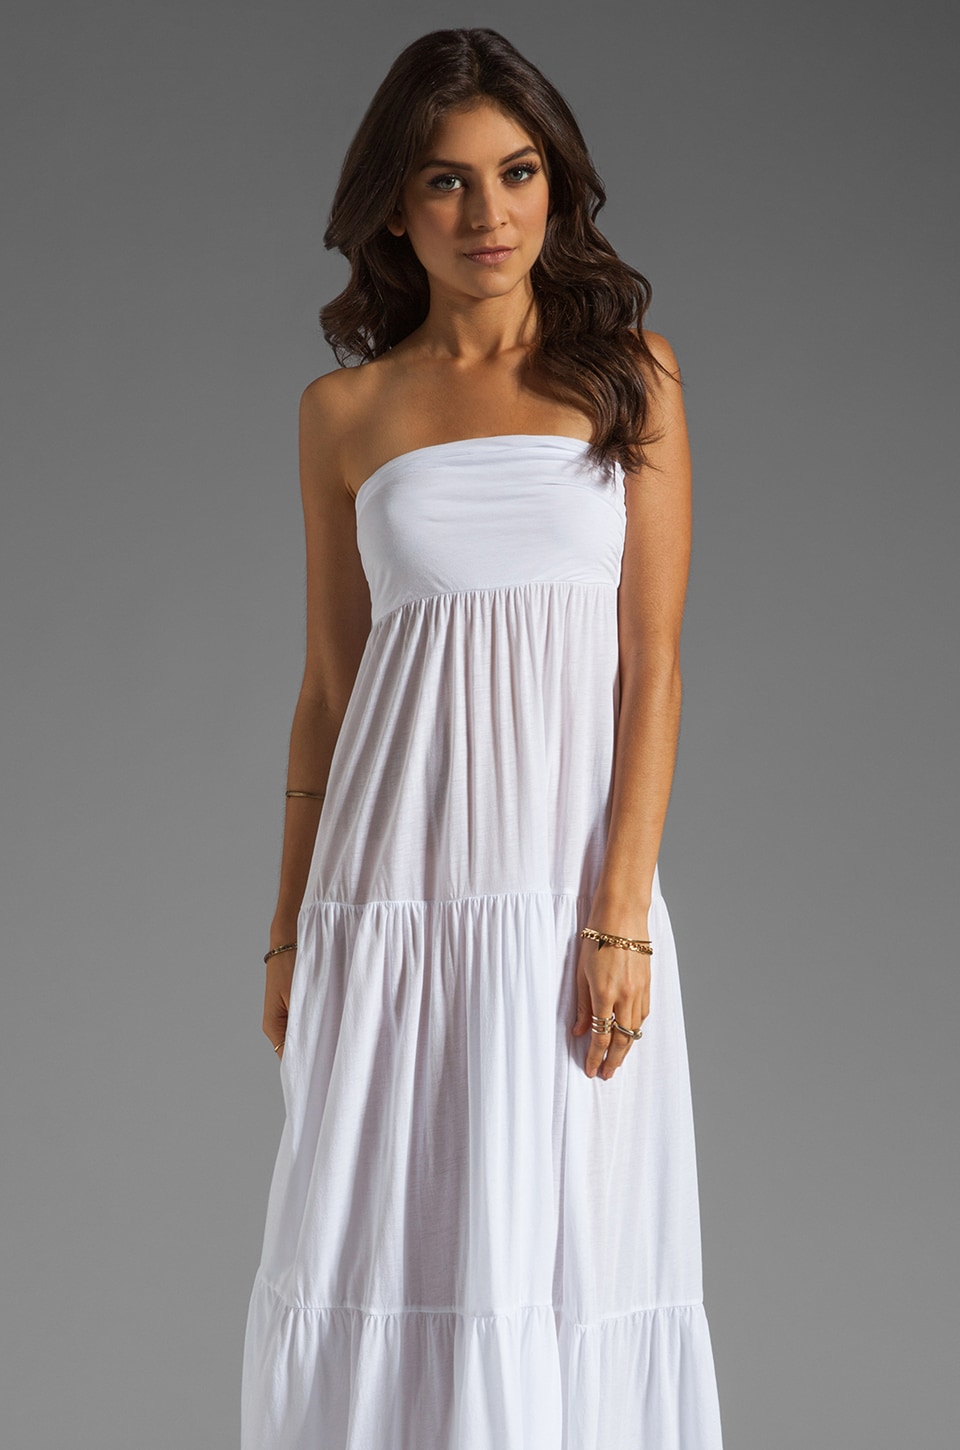 Velvet by Graham & Spencer Sheer Jersey Masha Maxi Dress in White